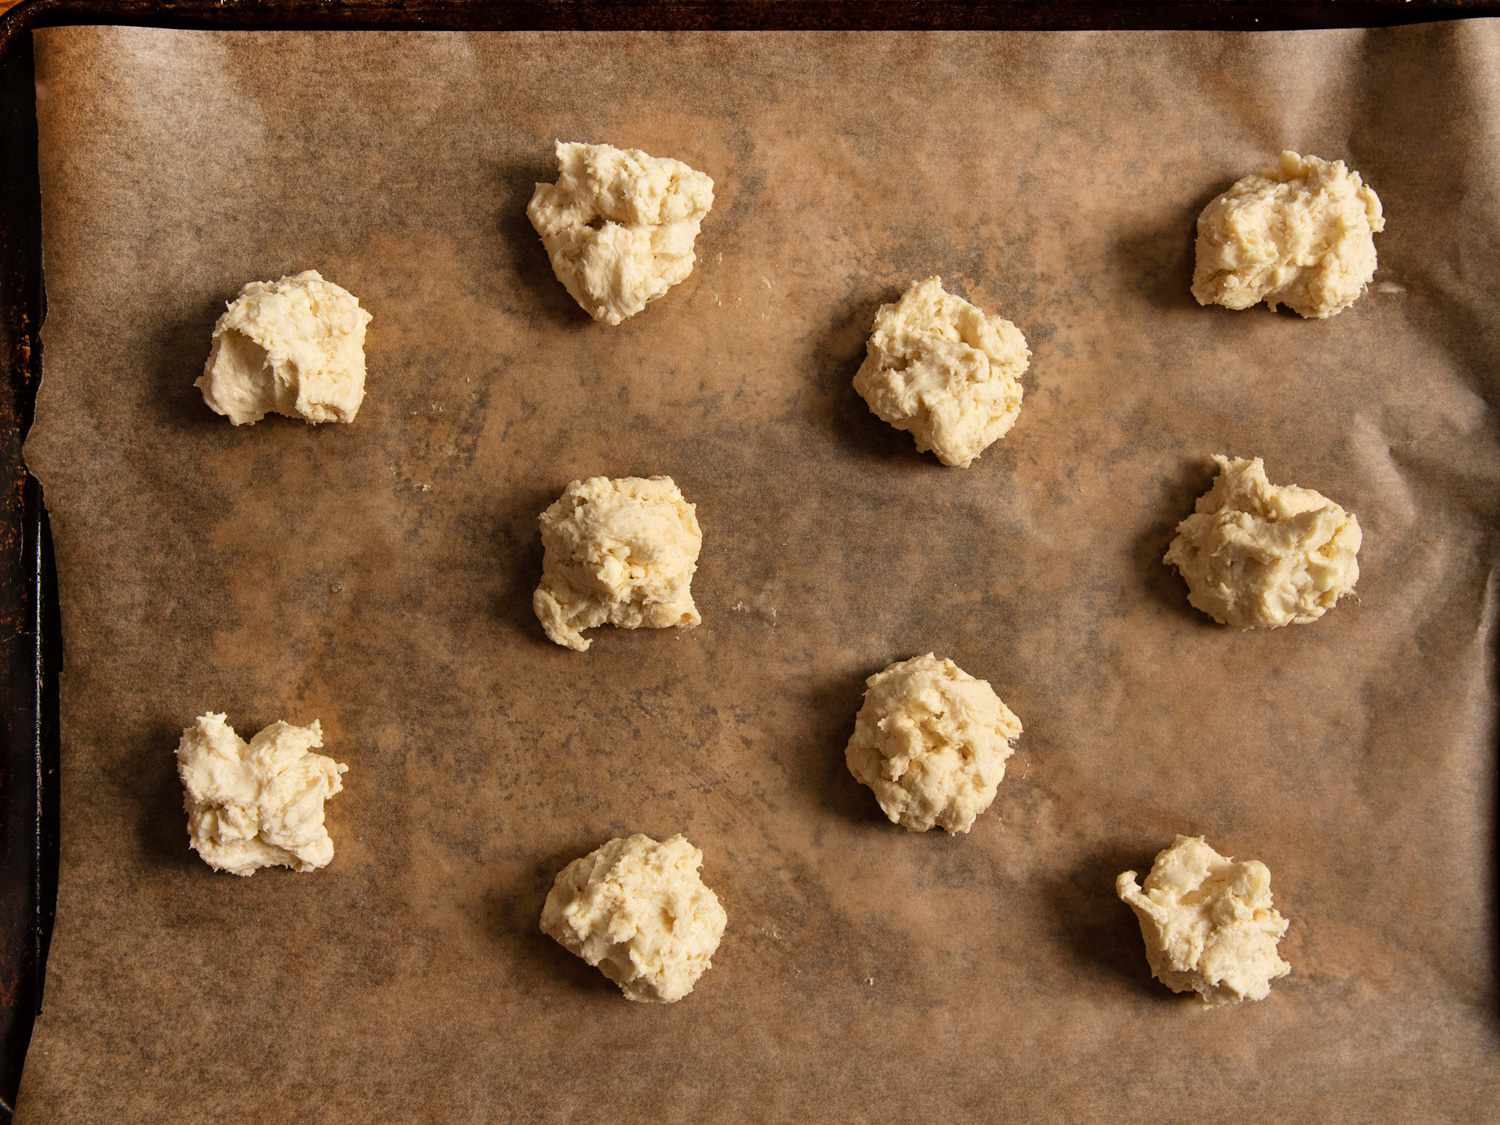 Dollops of biscuit dough on a parchment-lined rimmed baking sheet.